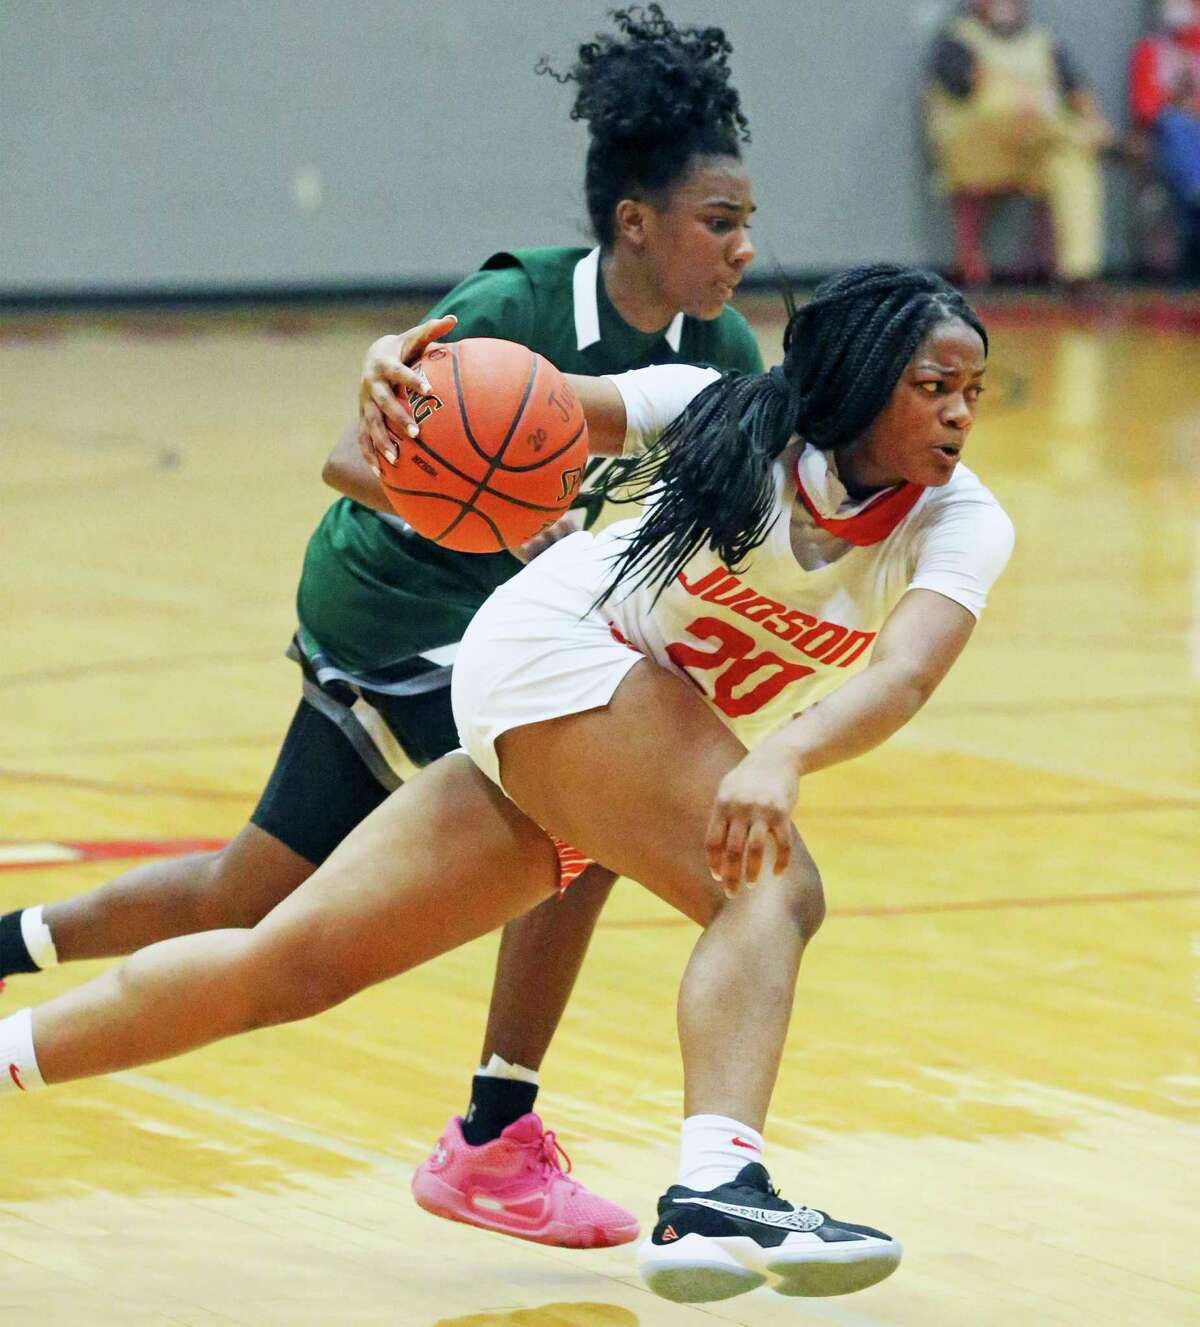 Rocket guard Kierra Sanderlin takes a long step into the lane as Judson hosts Reagan in girls basketball at Judson gym Dec. 1, 2020.